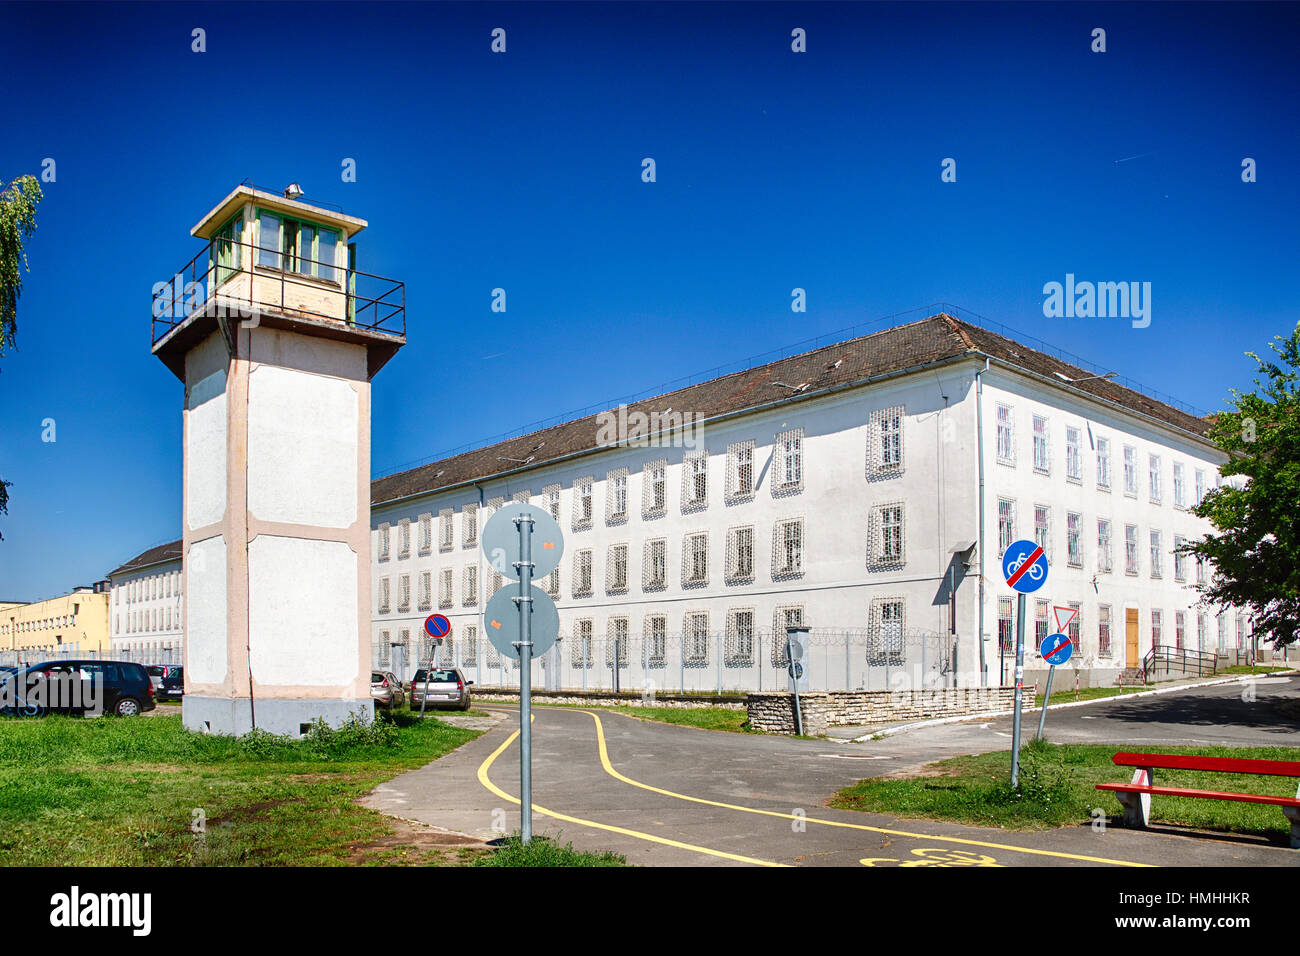 State Penitentiary, Vac, Pest County, Hungary - Stock Image